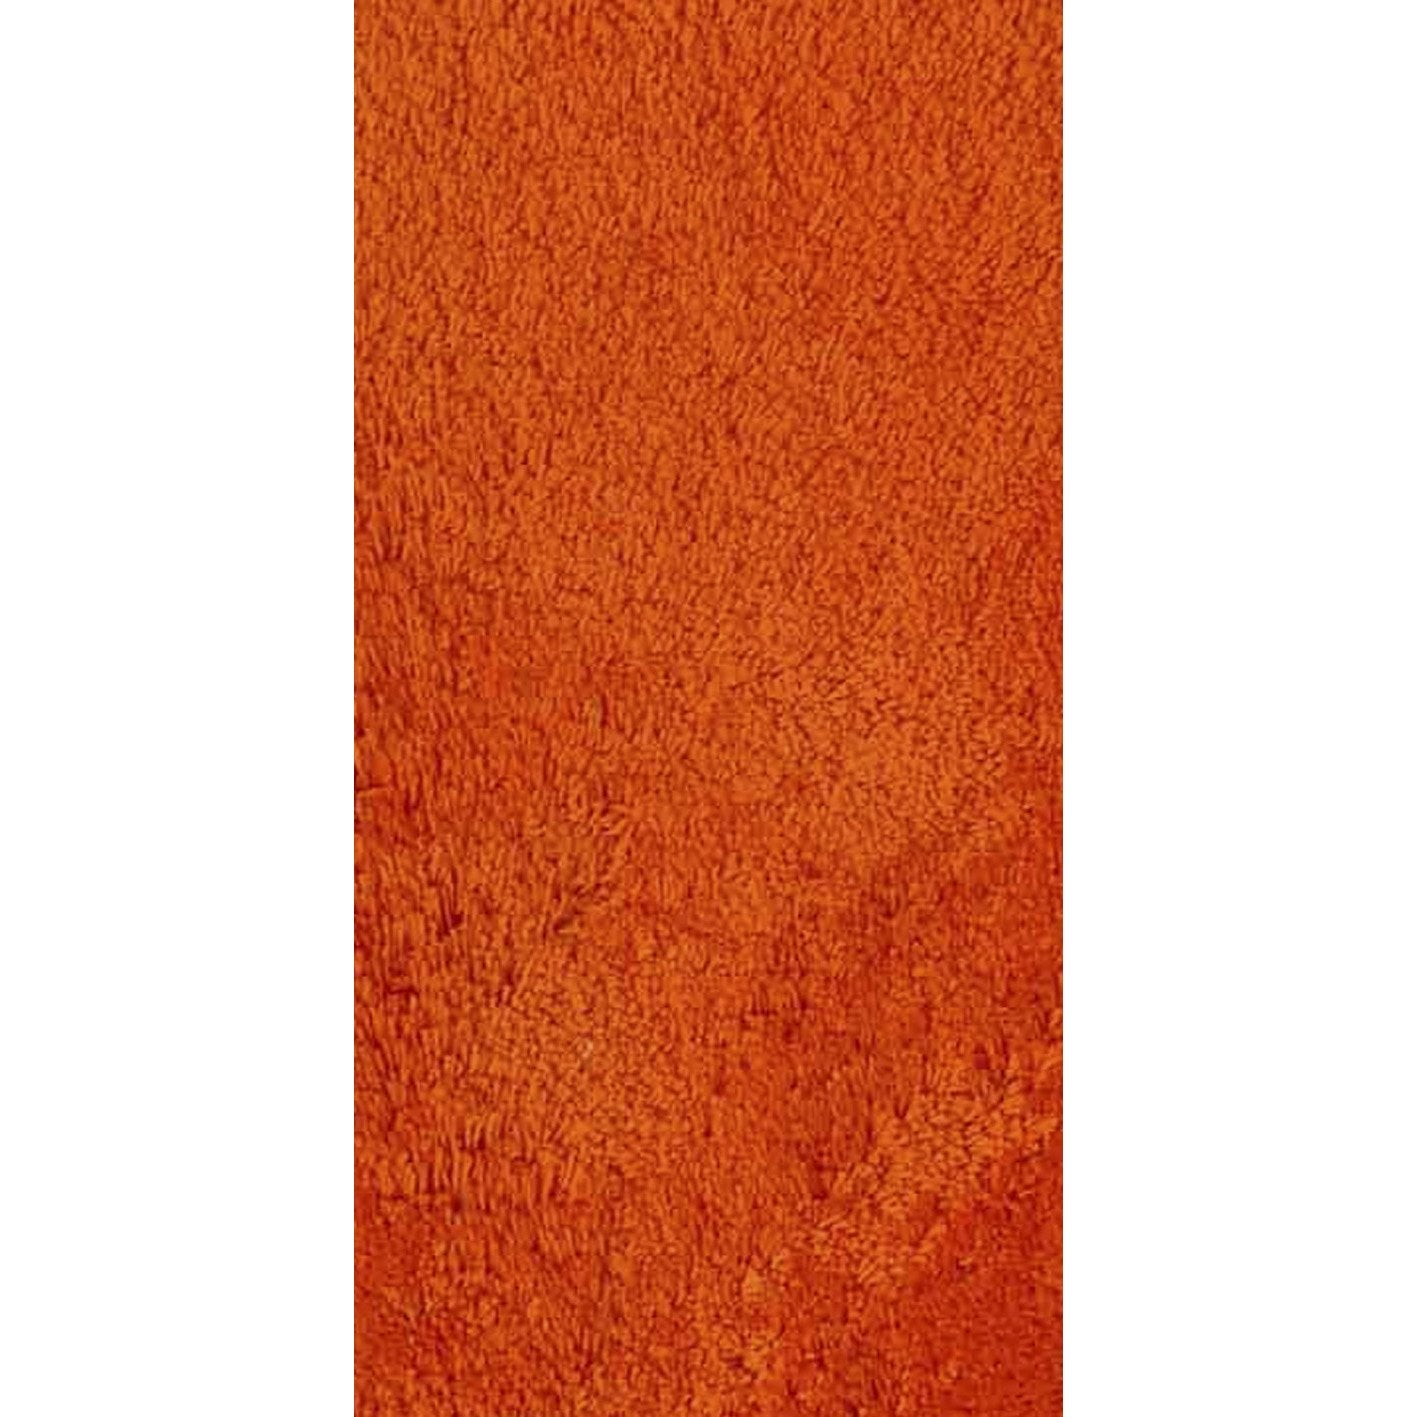 Tapis Orange Shaggy Agathe X Cm Leroy Merlin